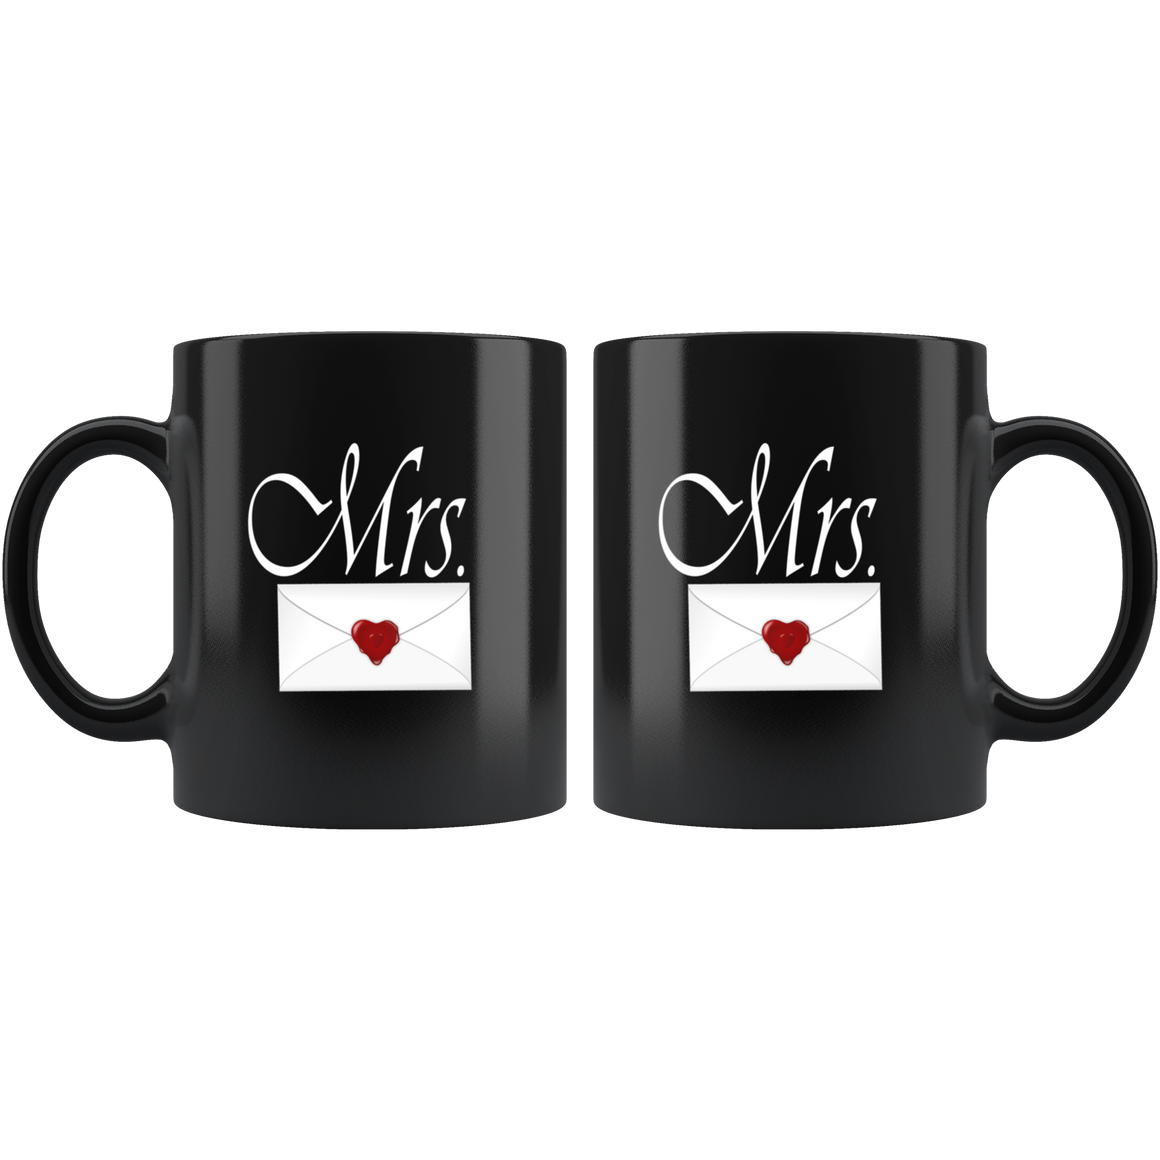 Black Chic 11oz Mrs. Coffee Tea Mug